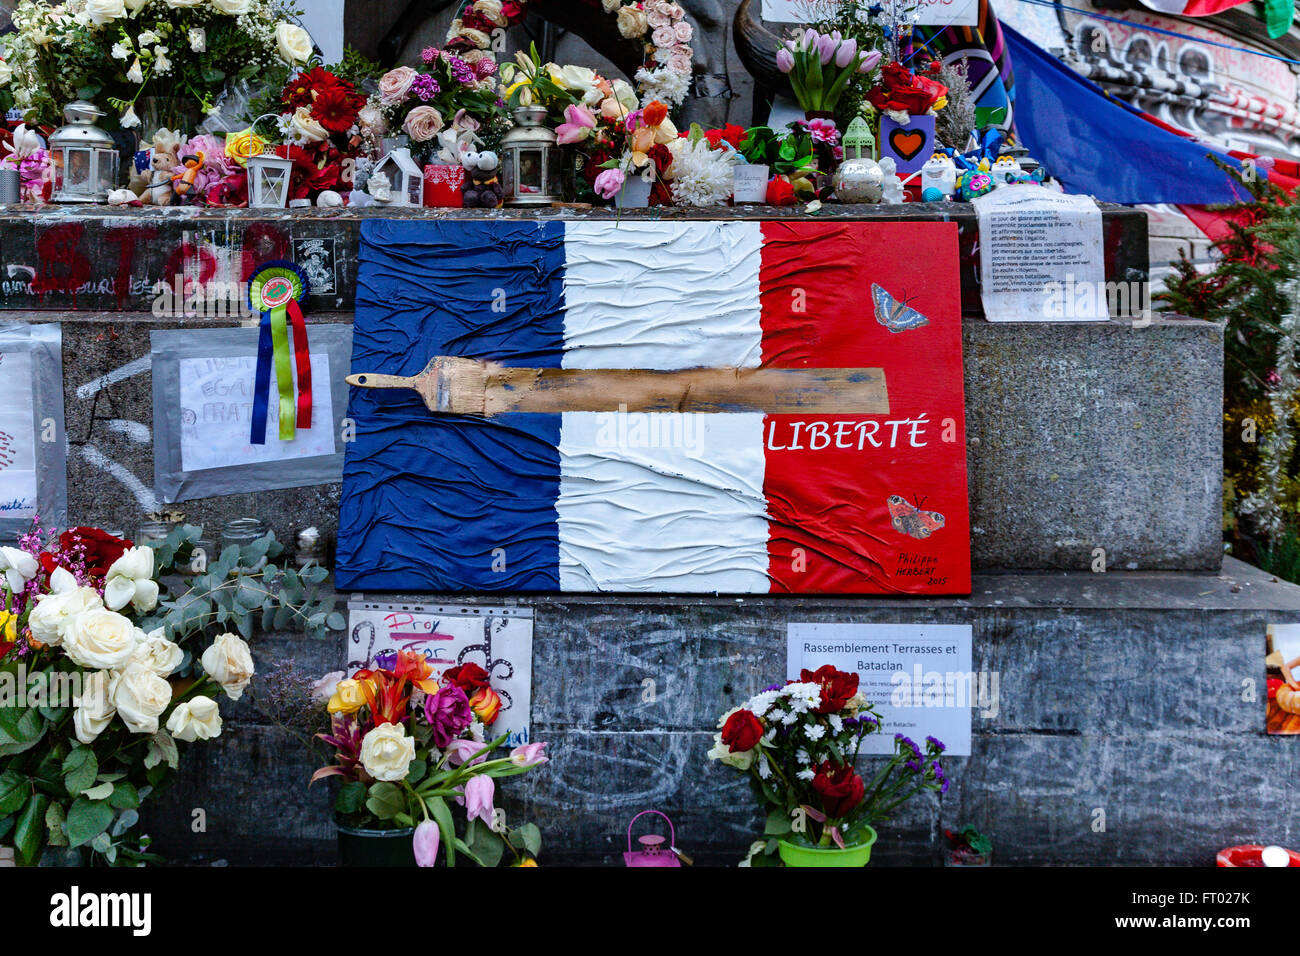 Tributes to victims of terrorism in Paris France - Stock Image